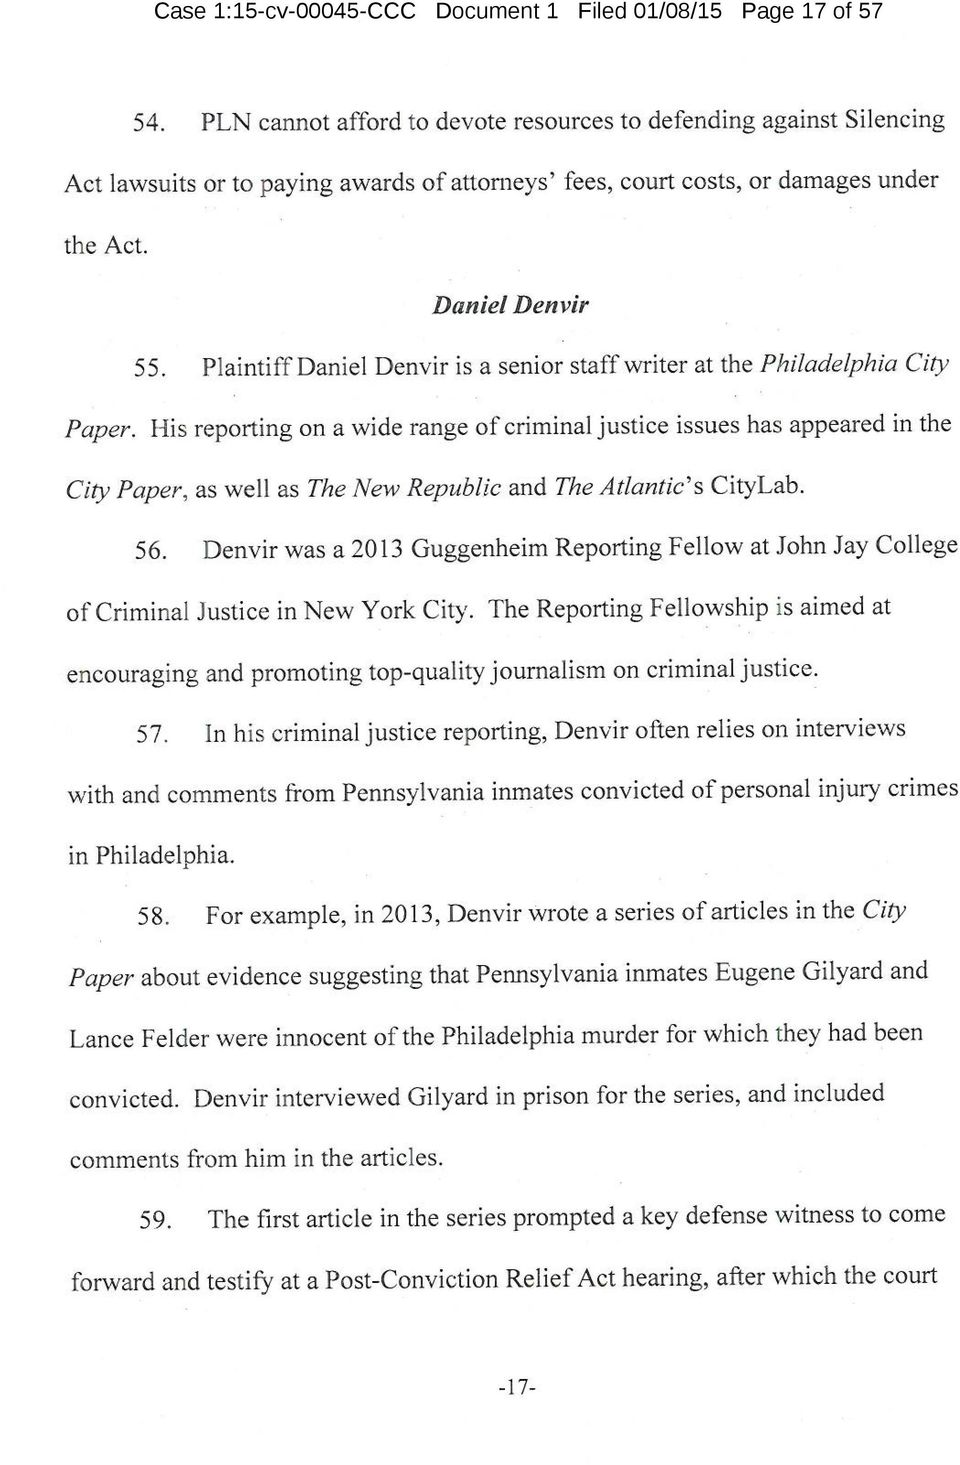 Plaintiff Daniel Denvir is a senior staff writer at the Philadelphia City Paper.